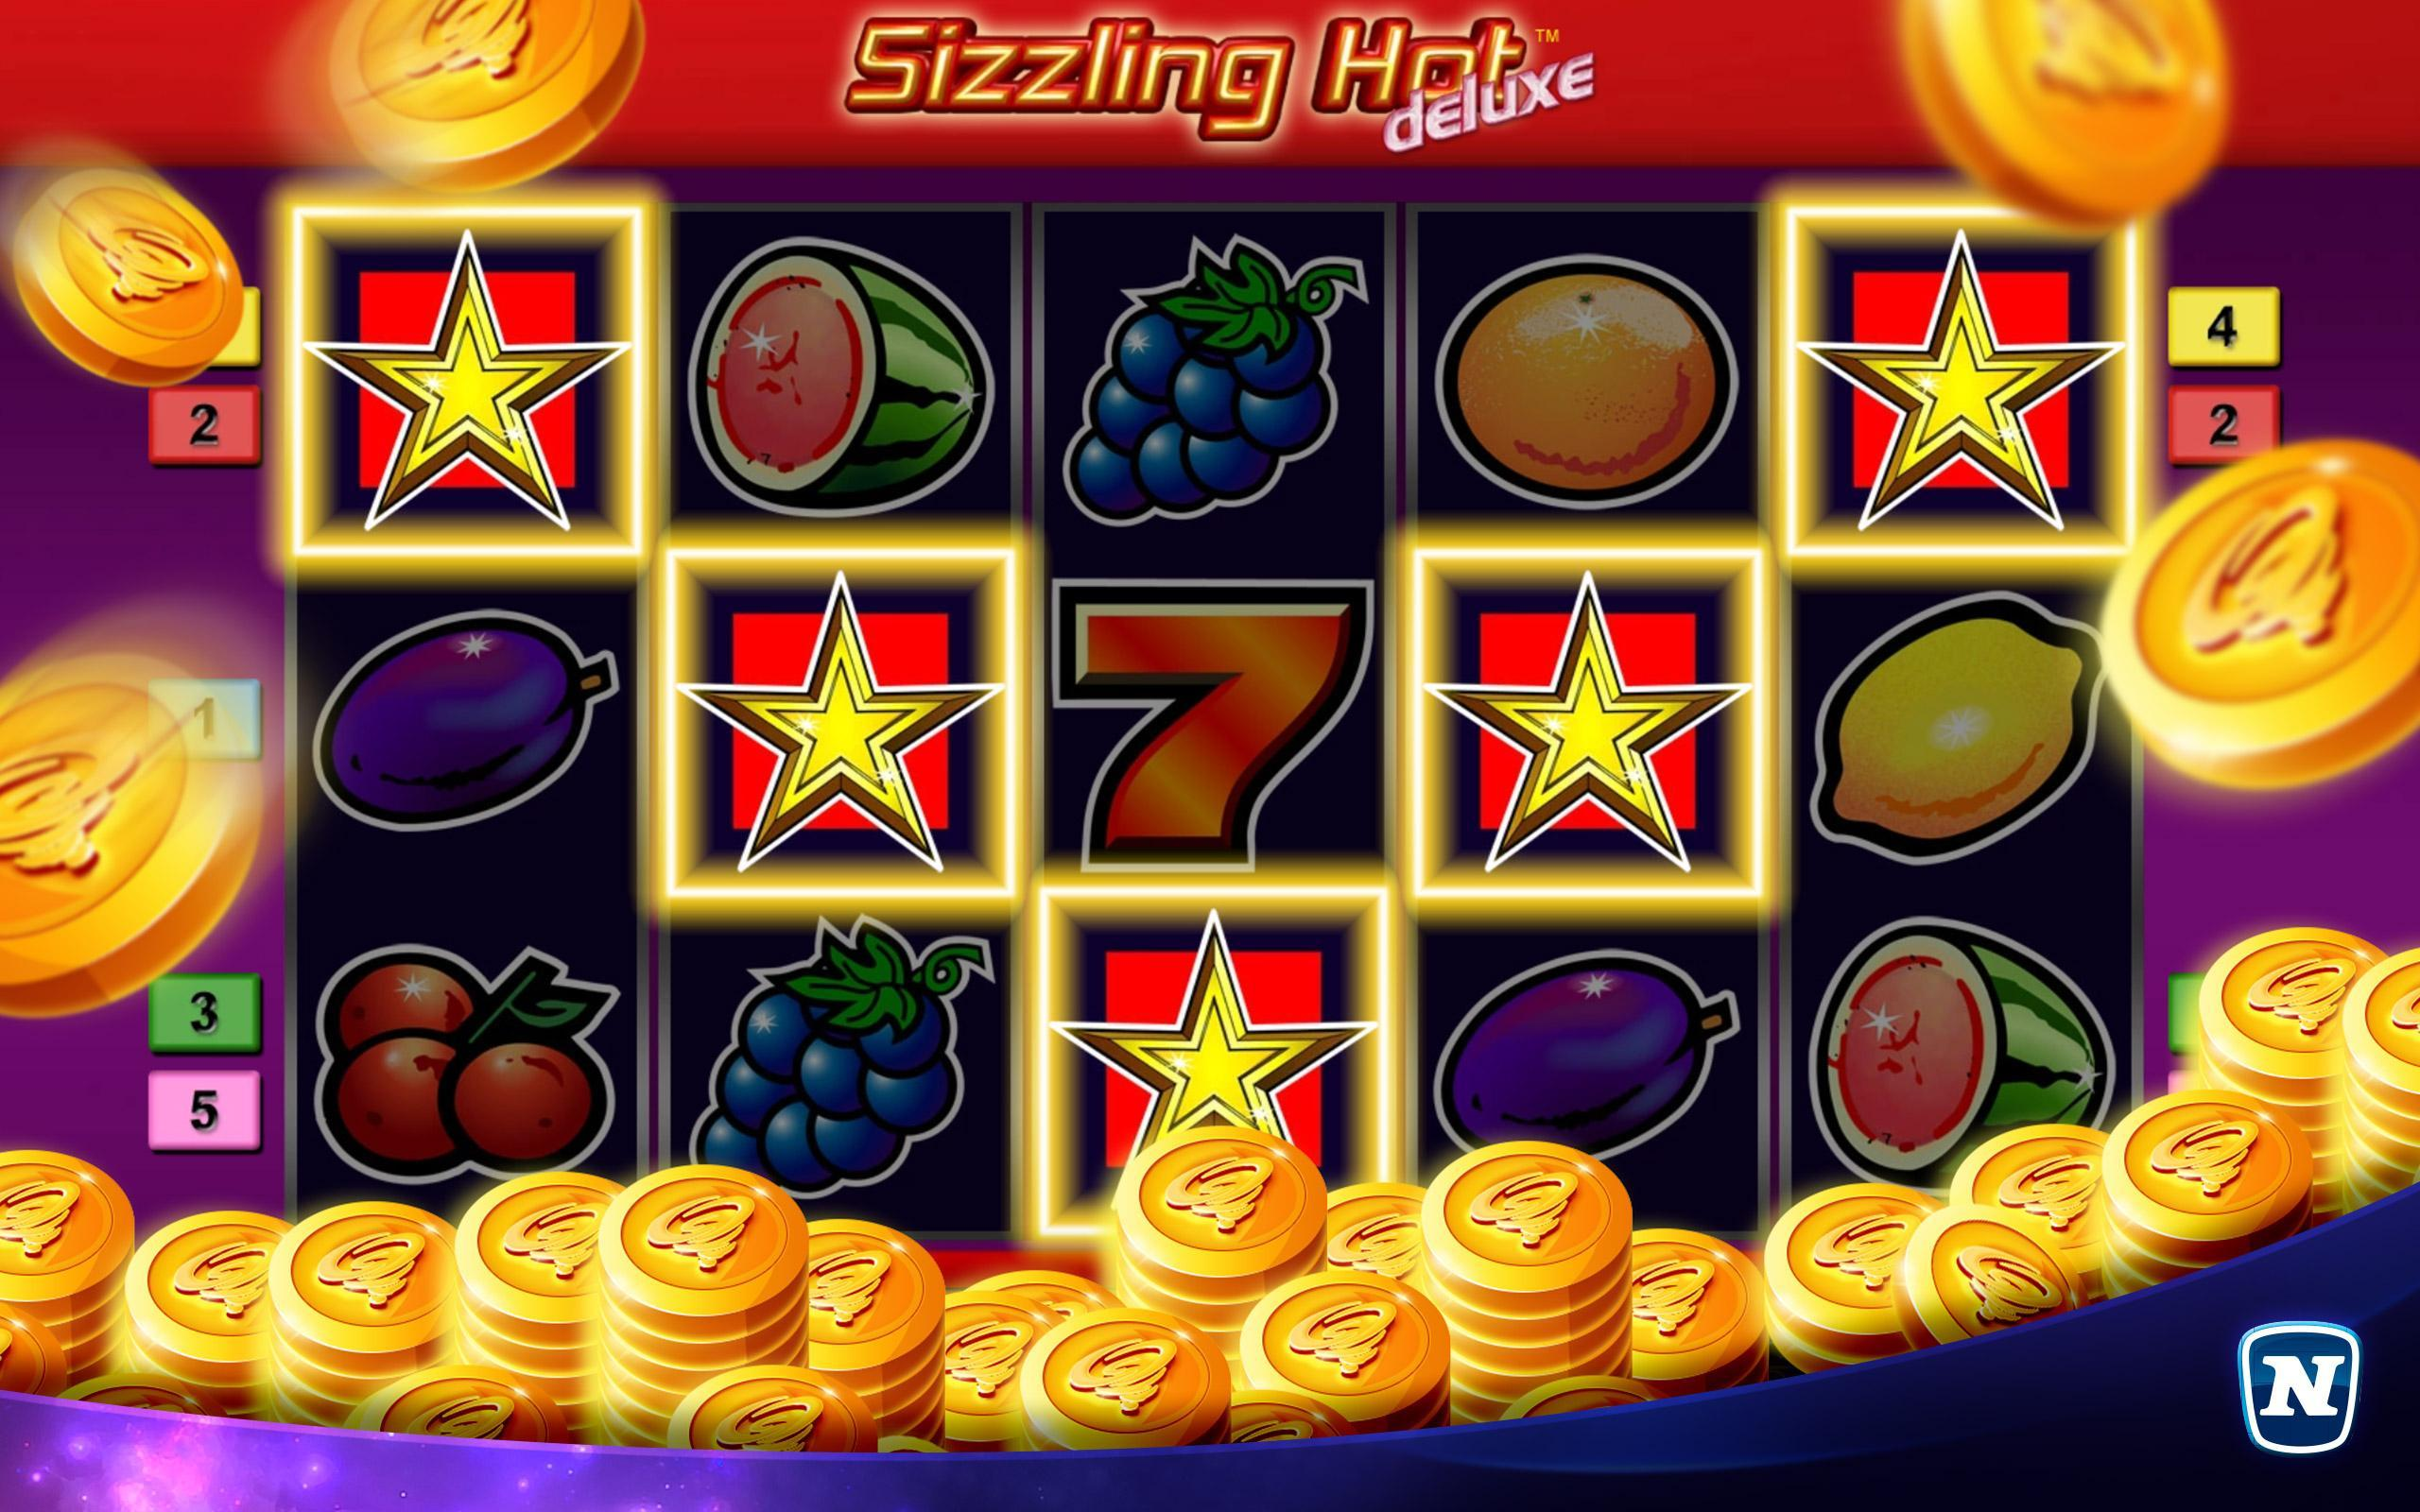 Sizzling Hot Apk V1.4.0.1 Download For Android